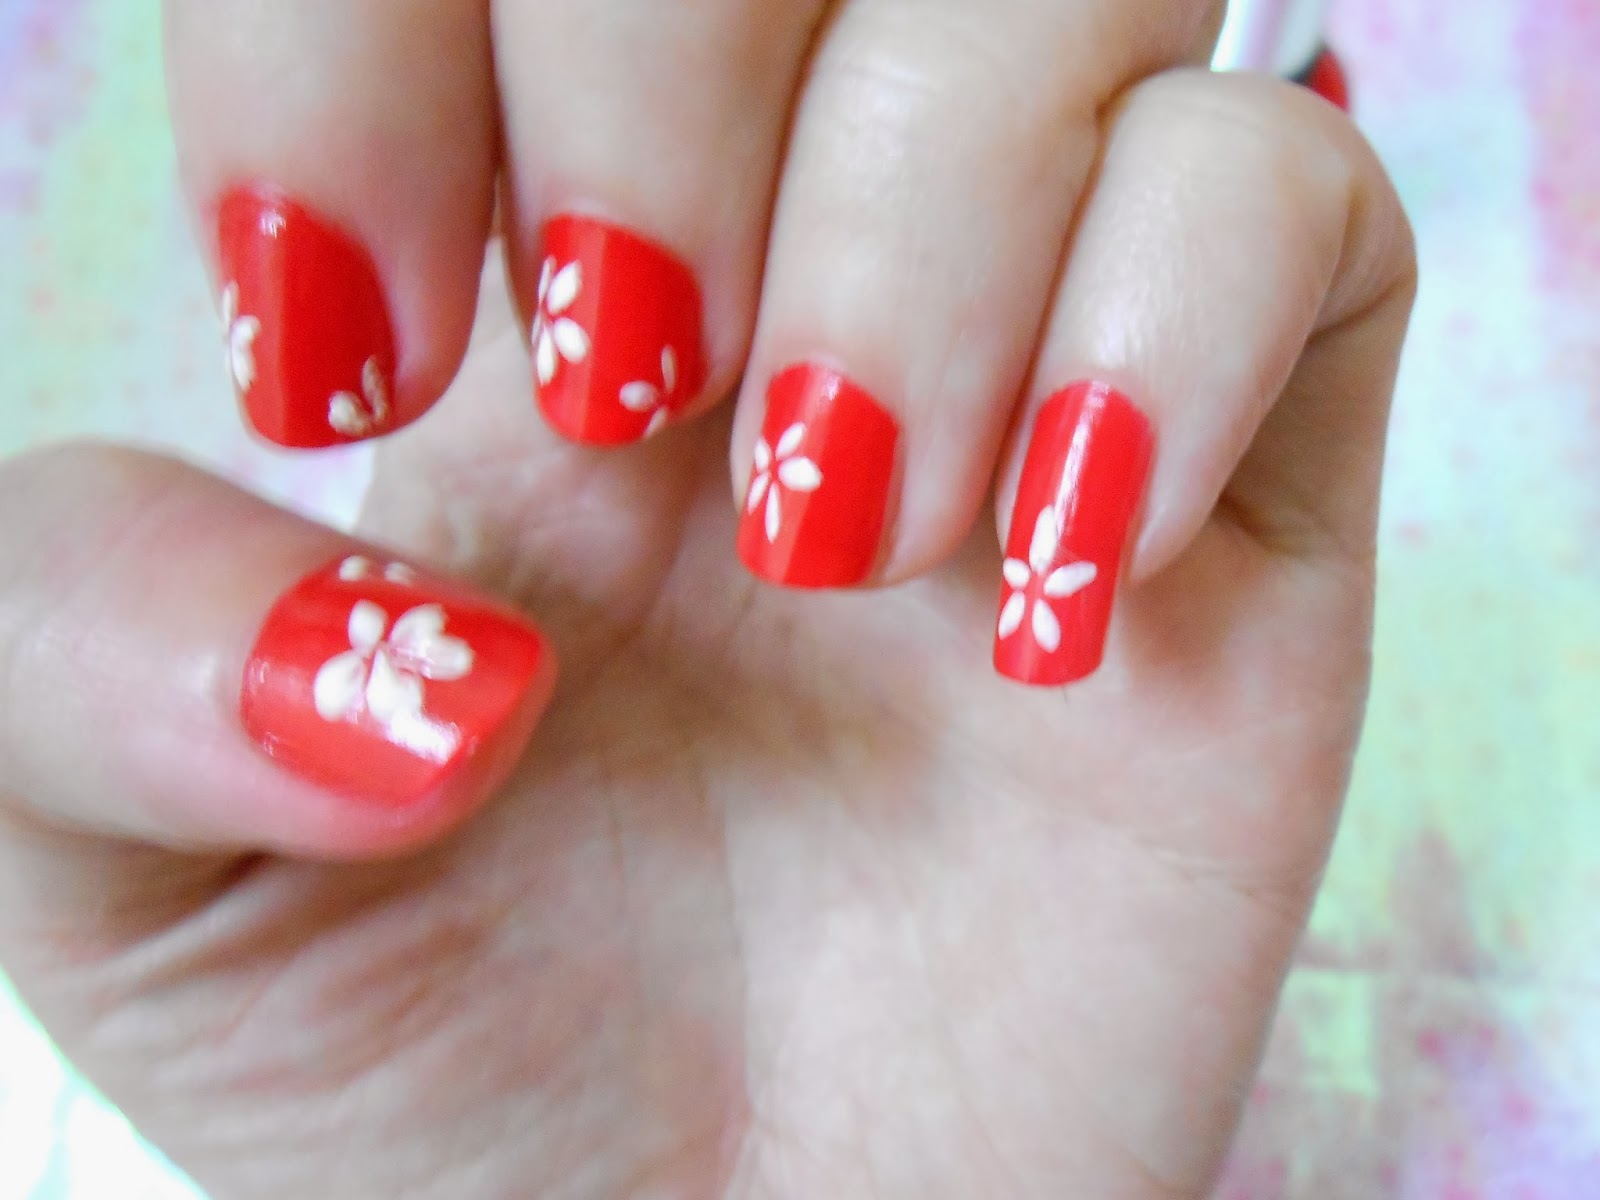 GREAT SKIN&LIFE: REVIEW ON SALLY HANSEN COMPLETE SALON MANICURE 550 ...